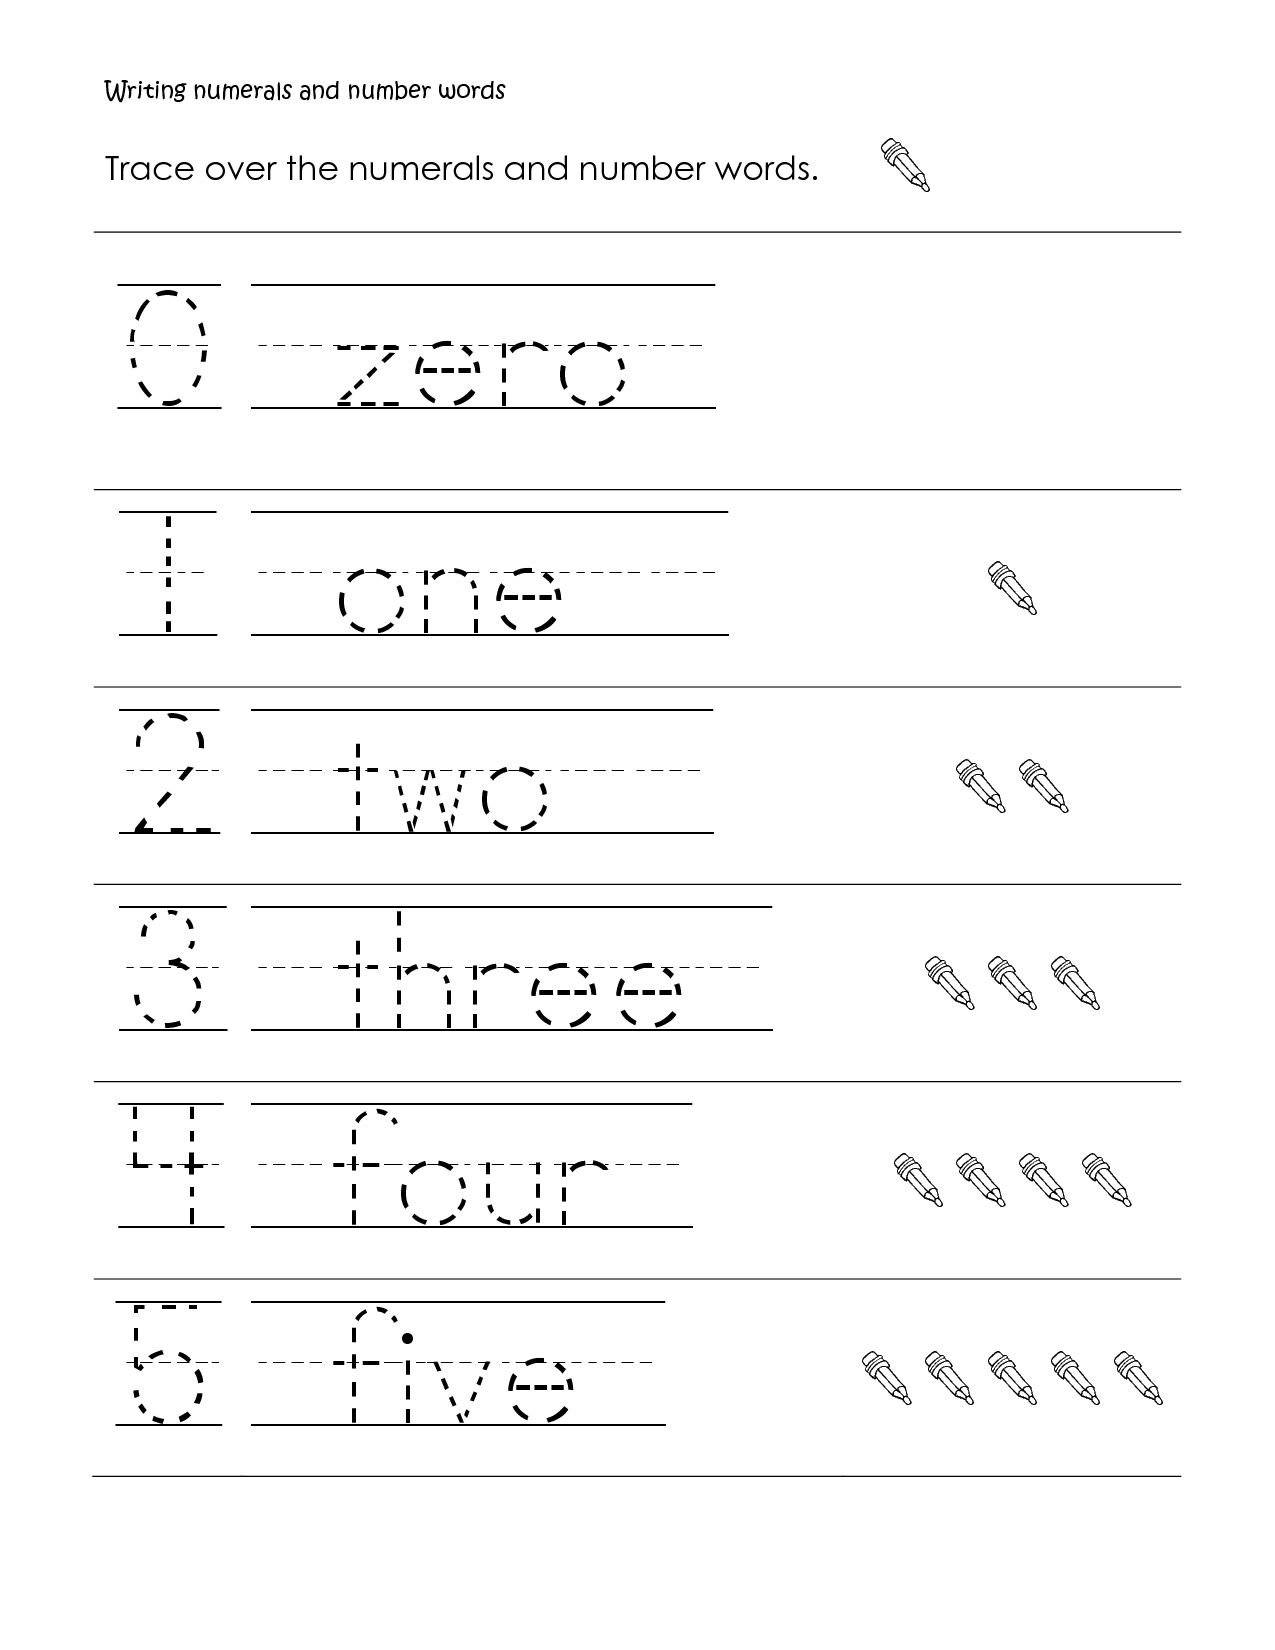 Worksheets Handwriting Worksheets For 1st Grade first grade math worksheet writing numbers and number words